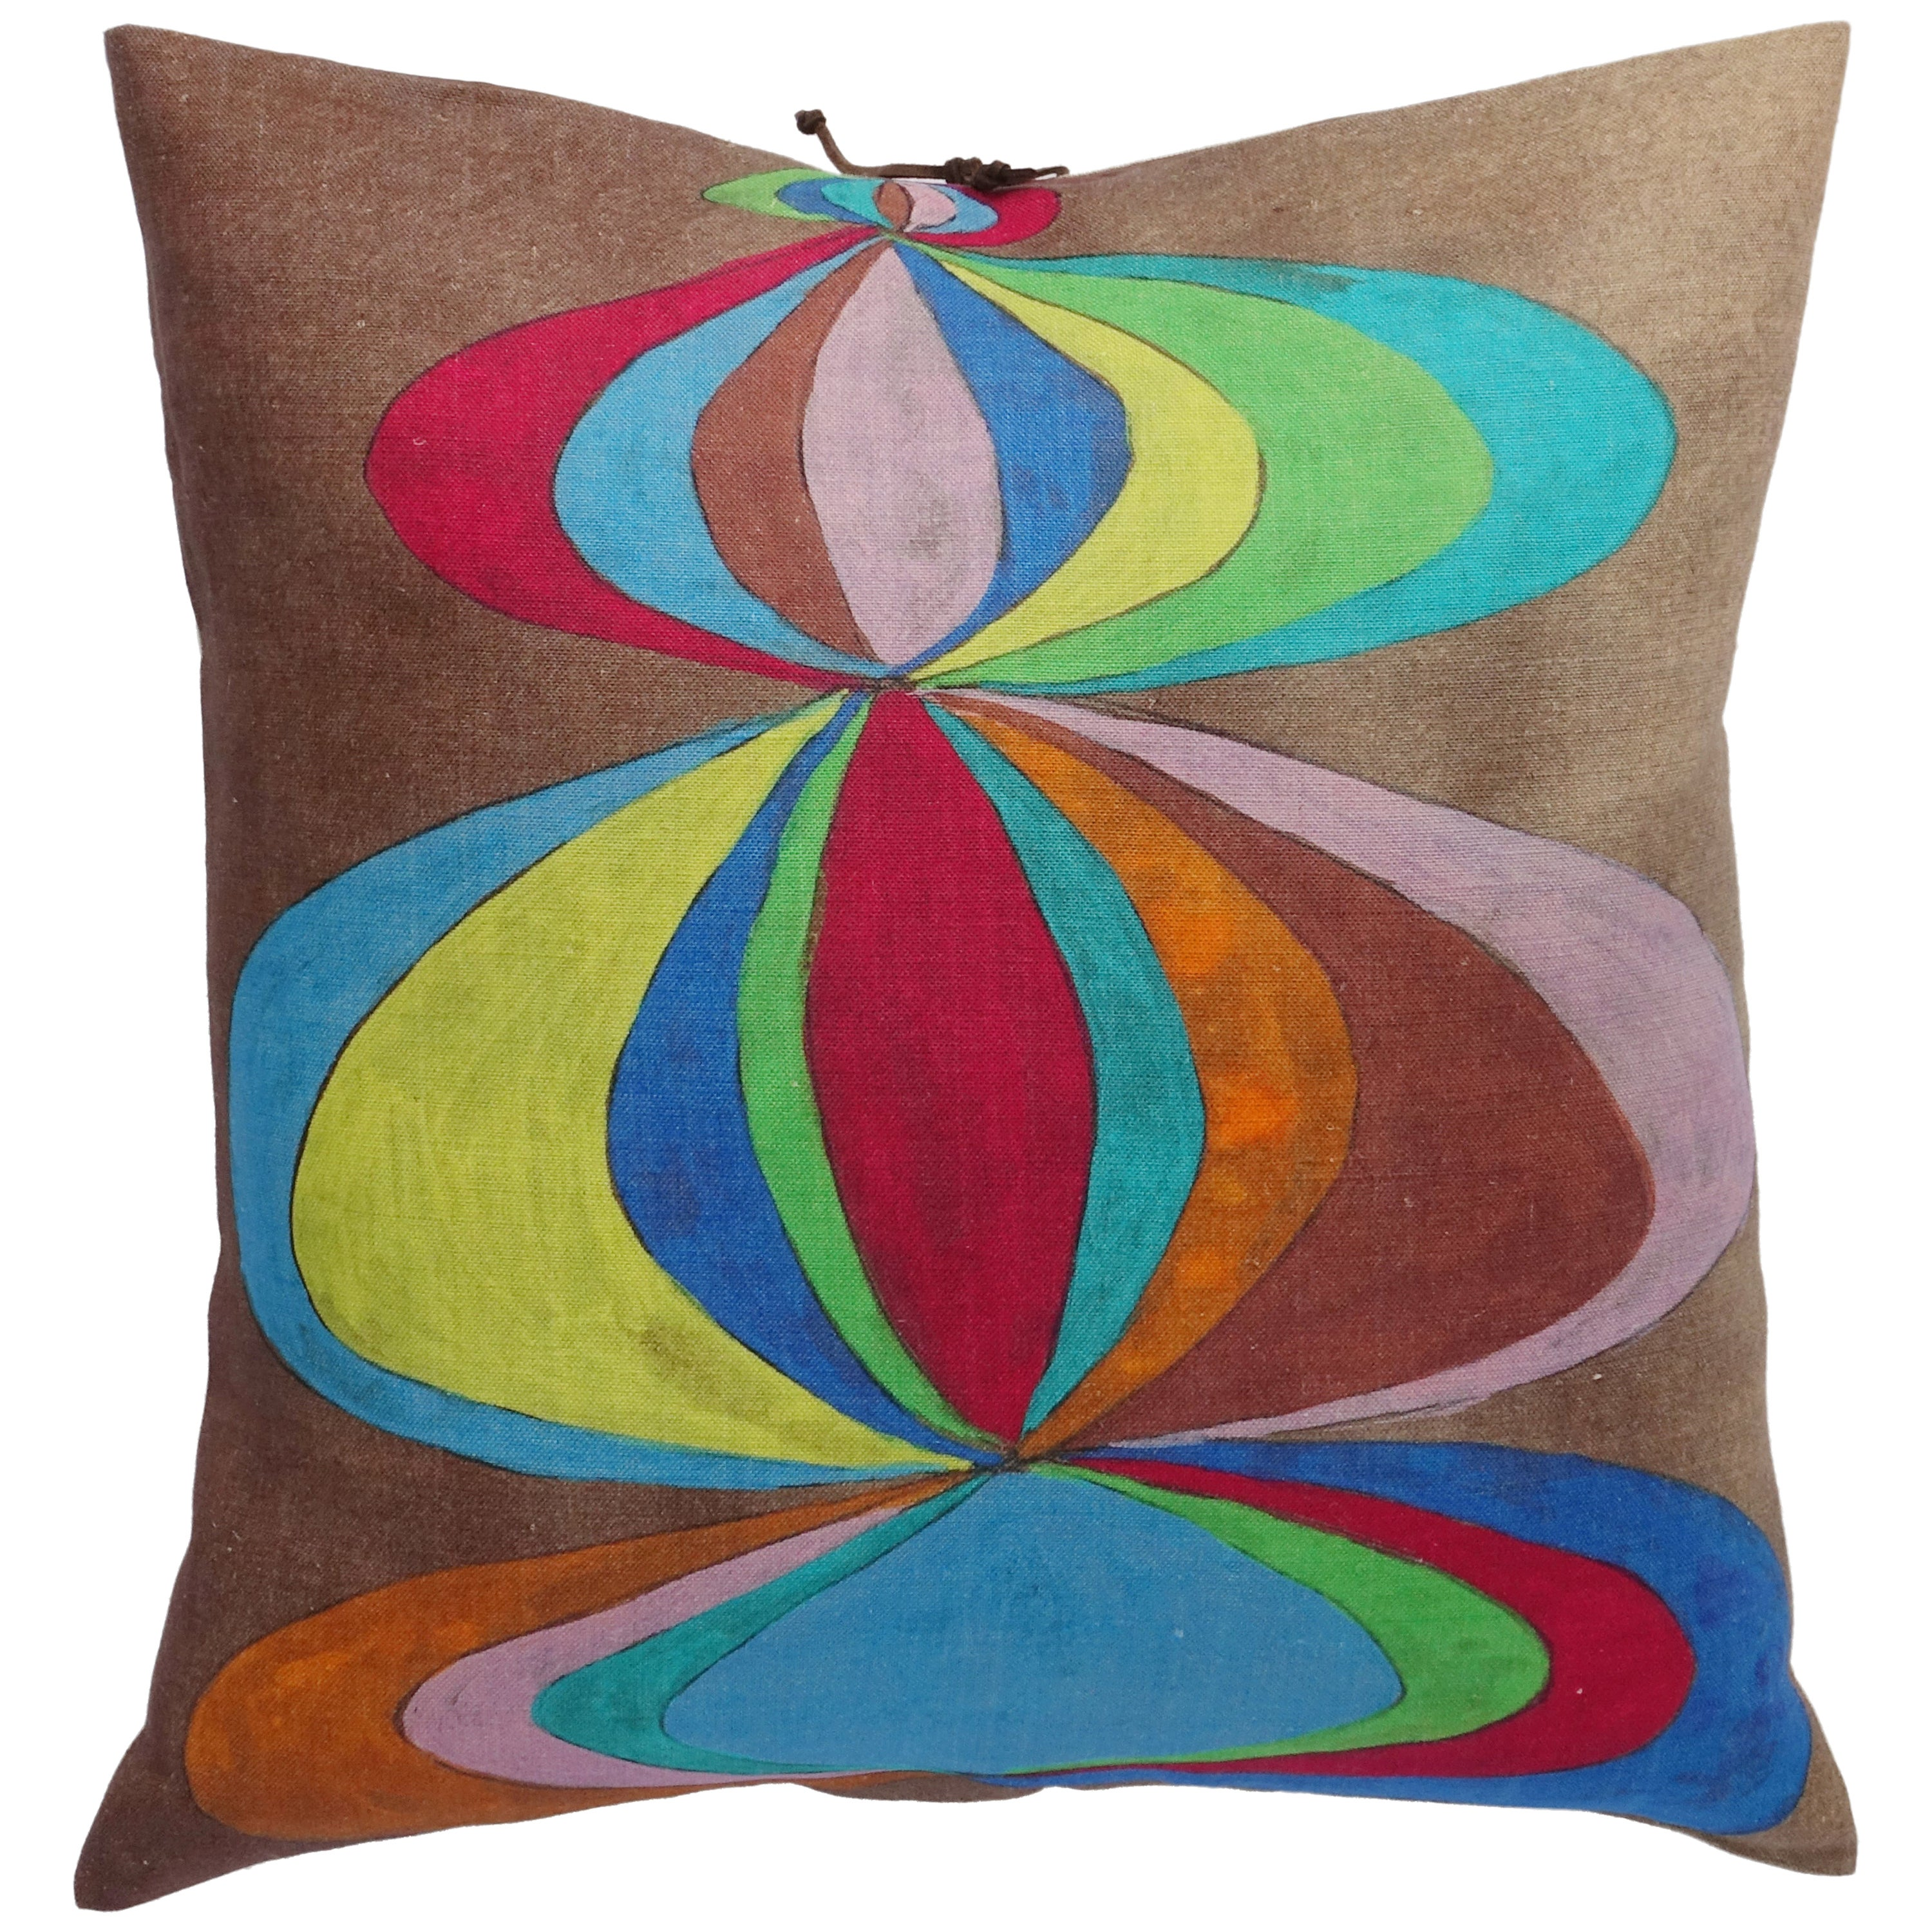 Printed Linen Pillow Concentric Multi